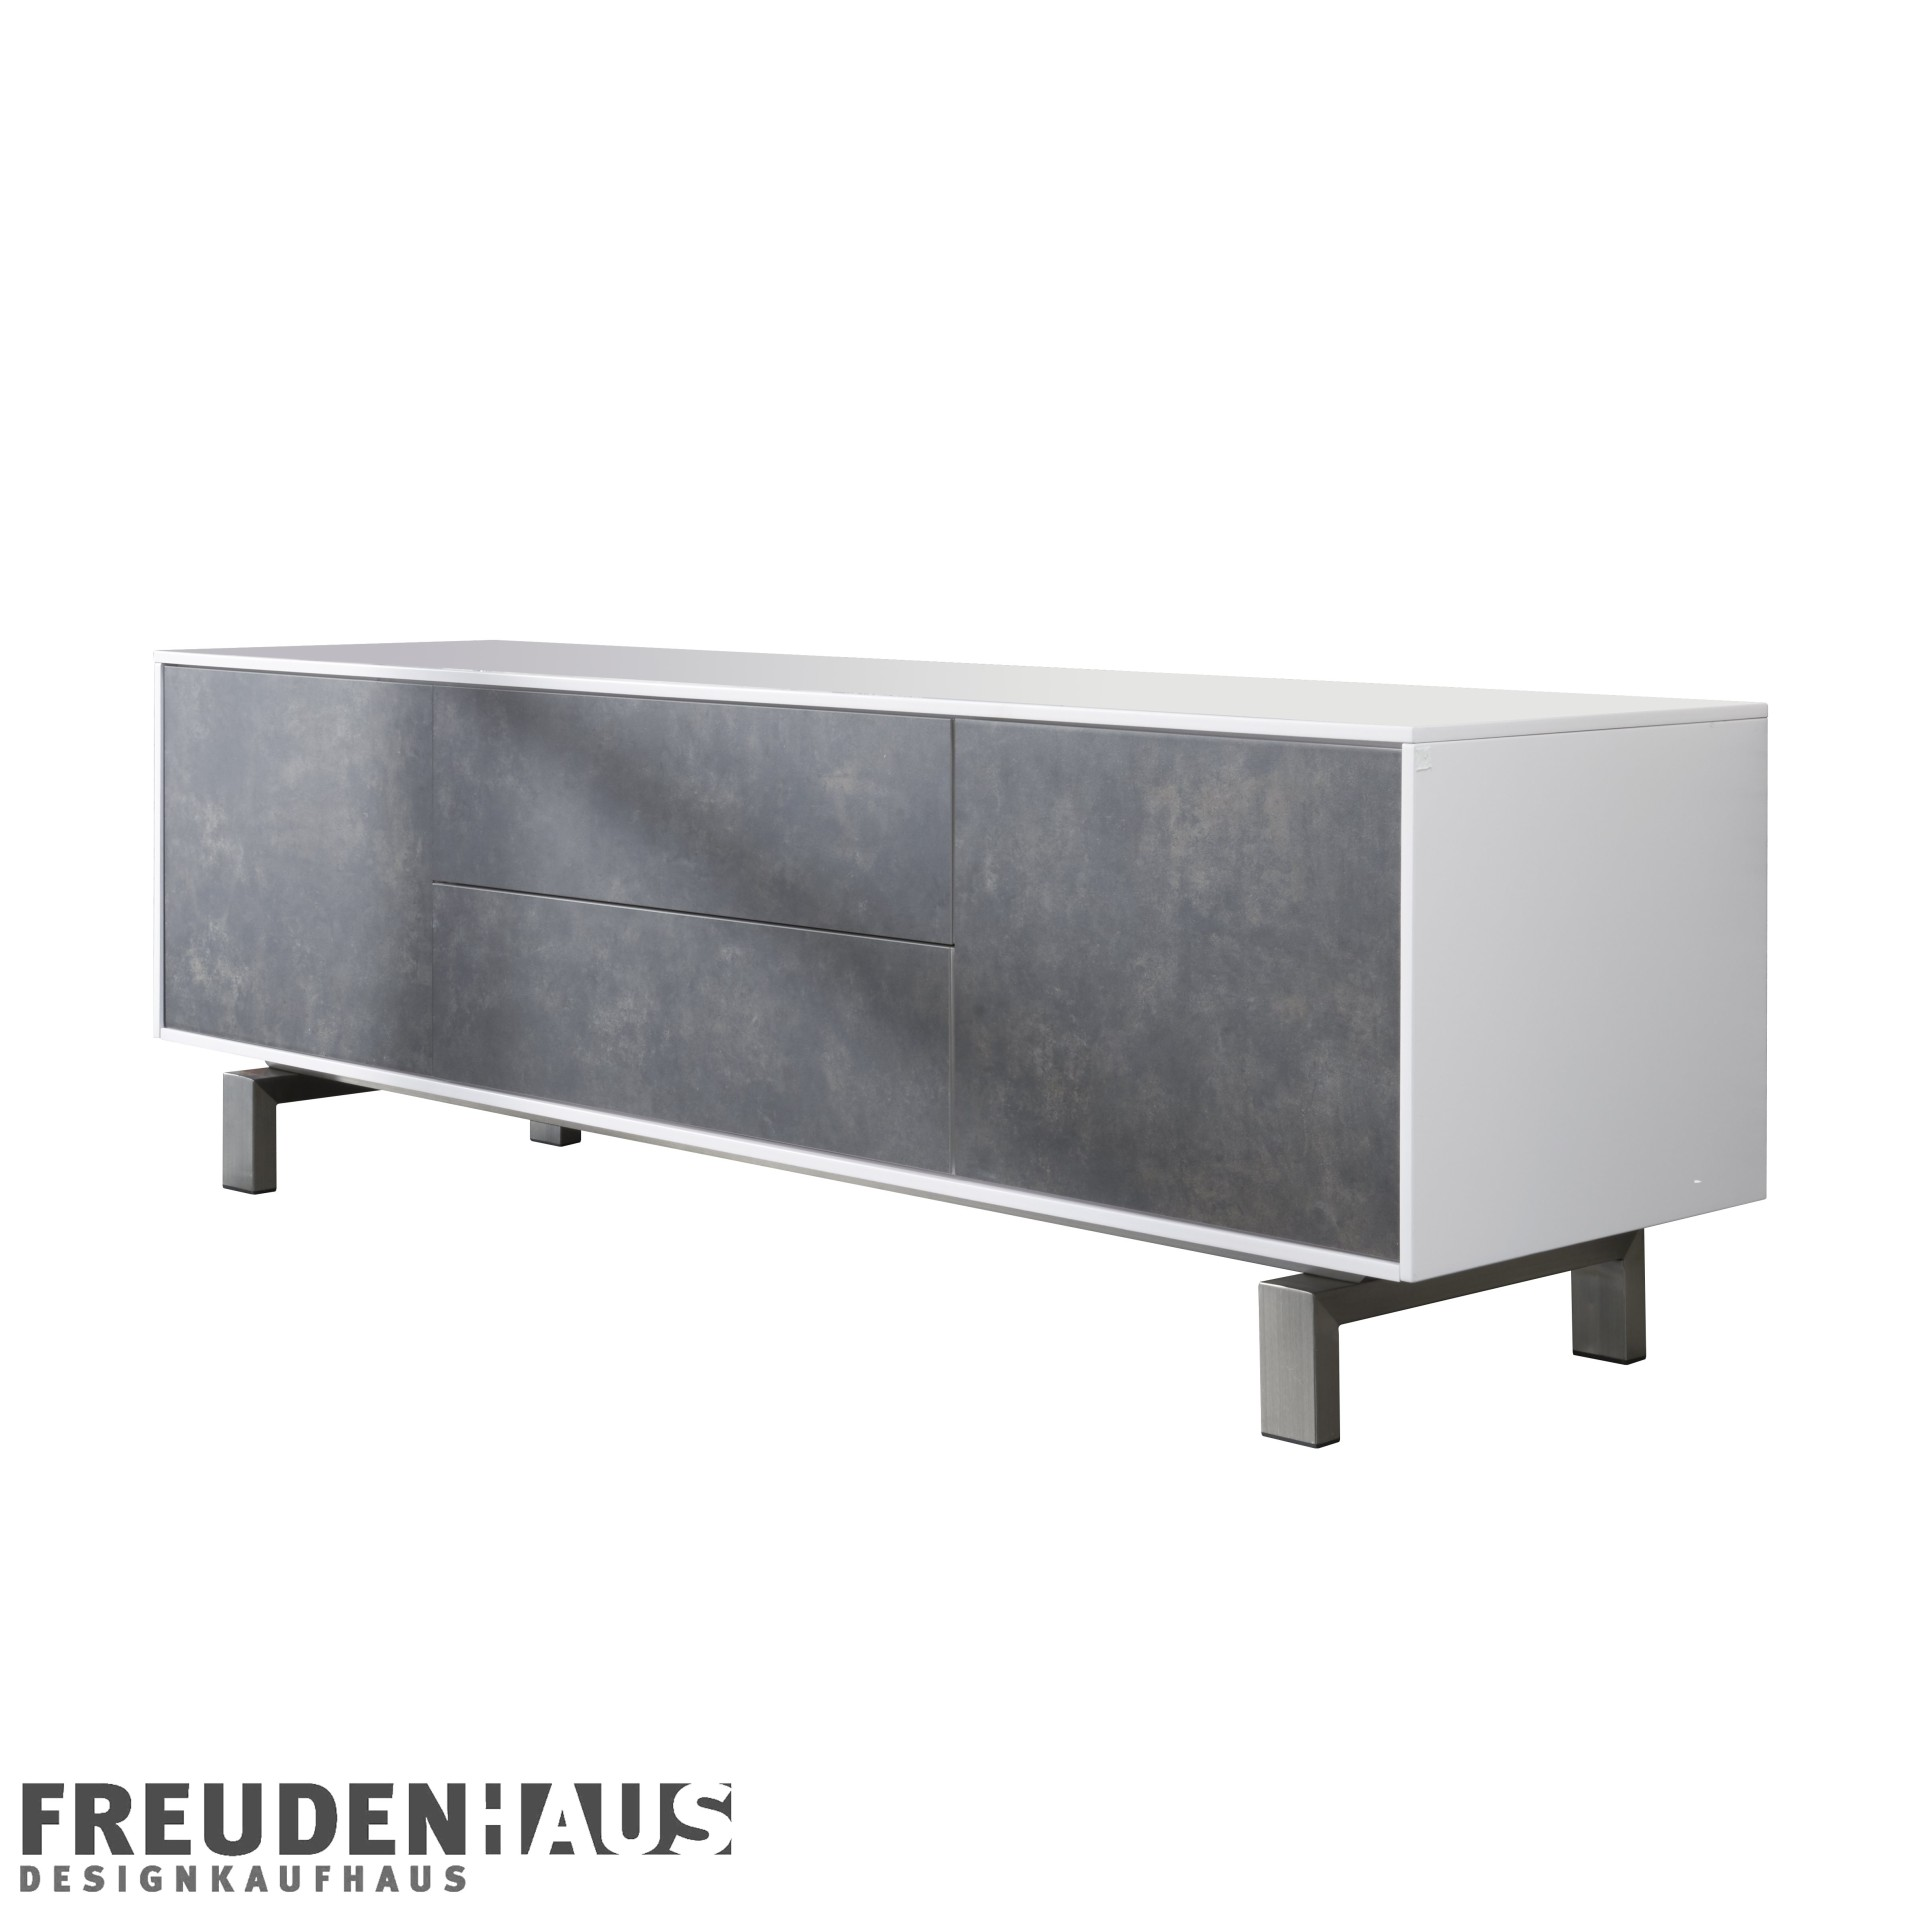 retro kommoden sideboards im freudenhaus online shop kaufen. Black Bedroom Furniture Sets. Home Design Ideas